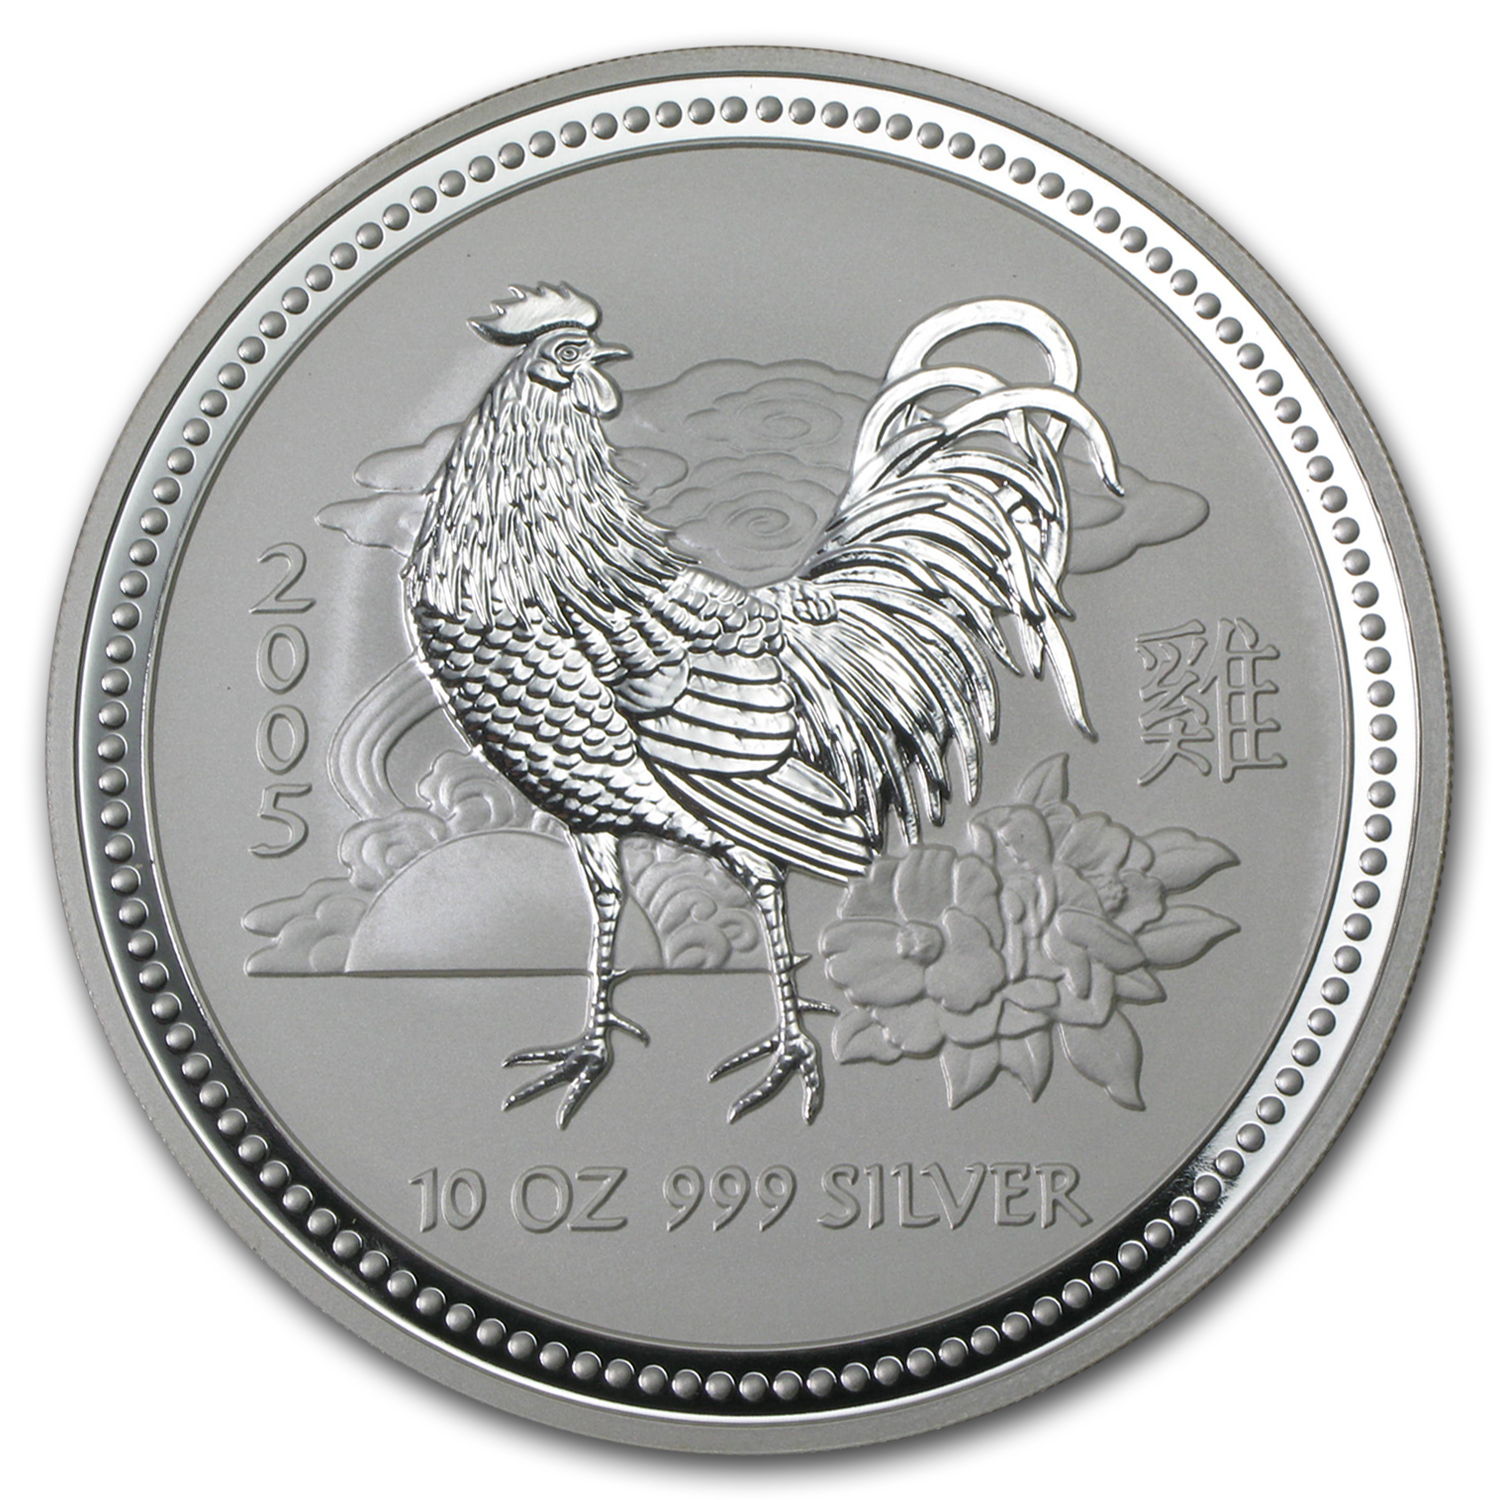 2005 Australia 10 oz Silver Year of the Rooster BU